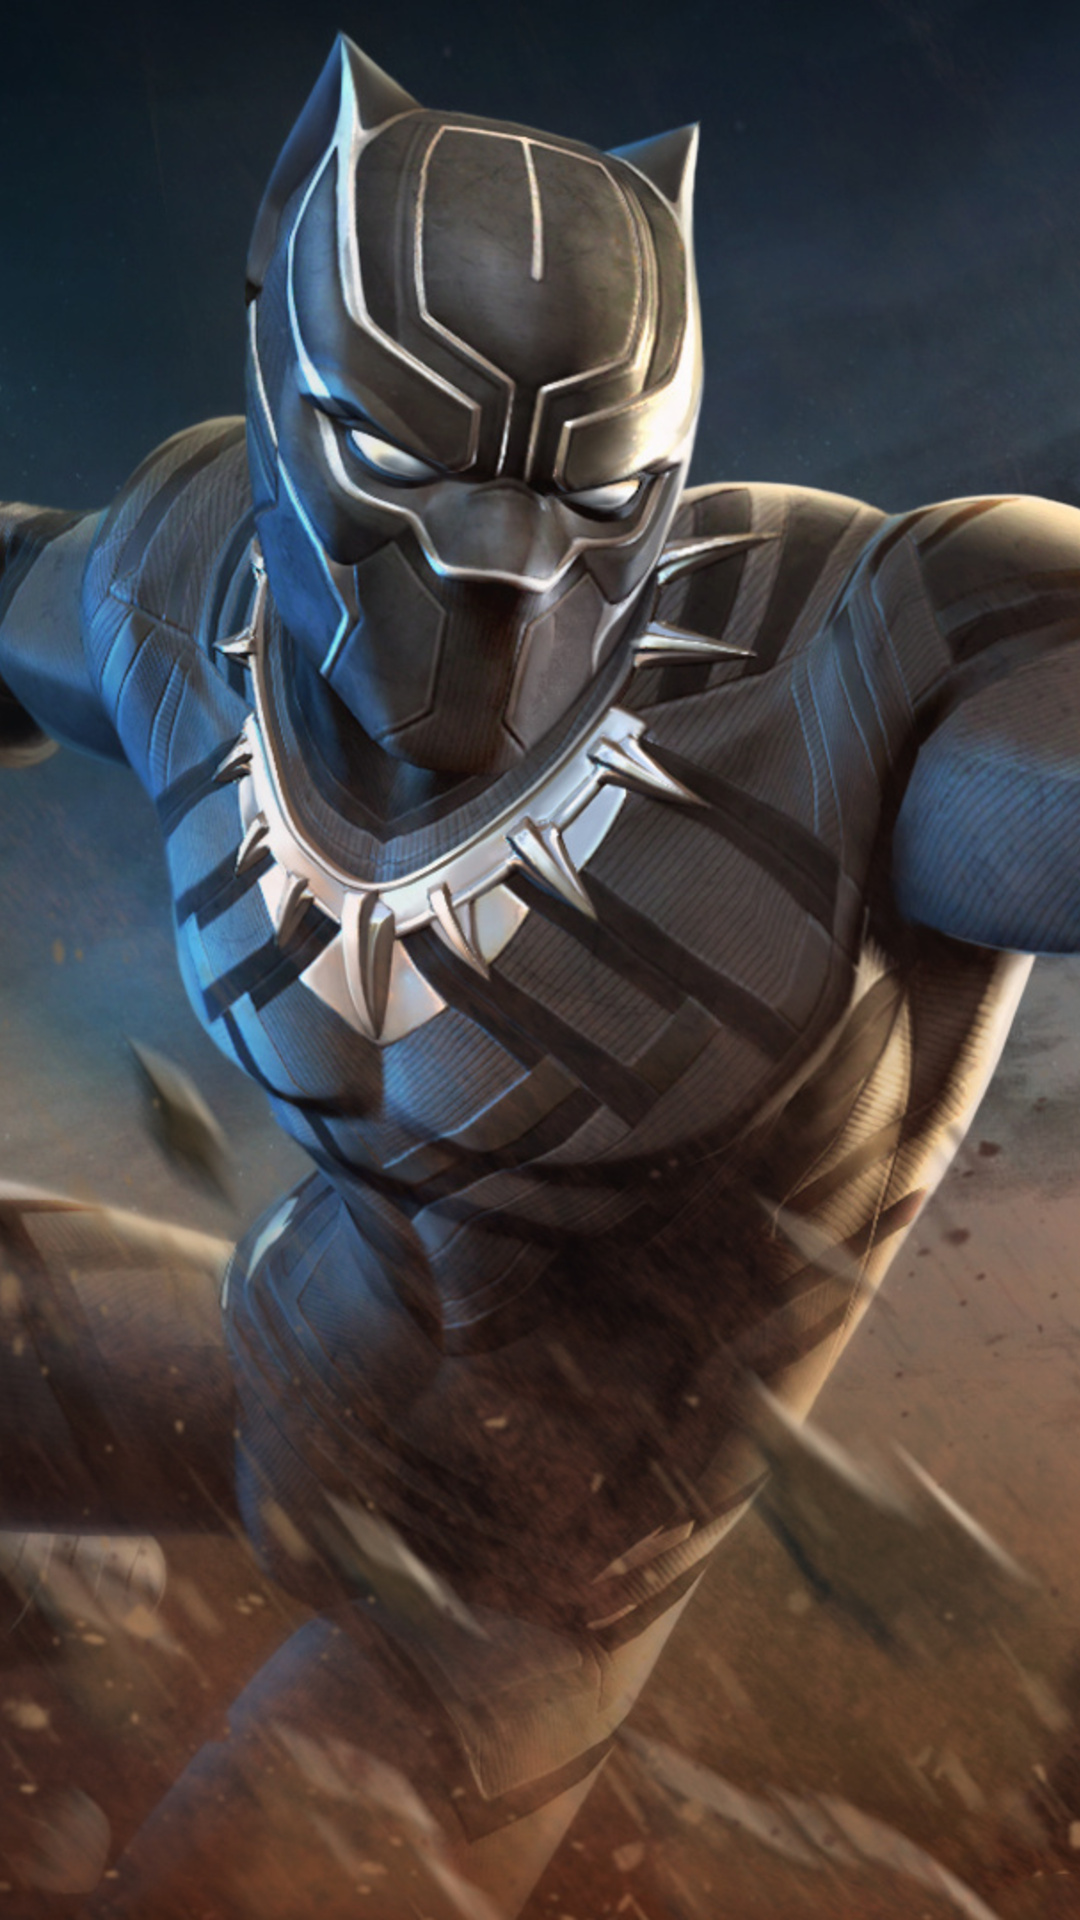 Good Wallpaper Marvel Iphone 7 - black-panther-marvel-contest-of-champions-2e-1080x1920  You Should Have_754660.jpg